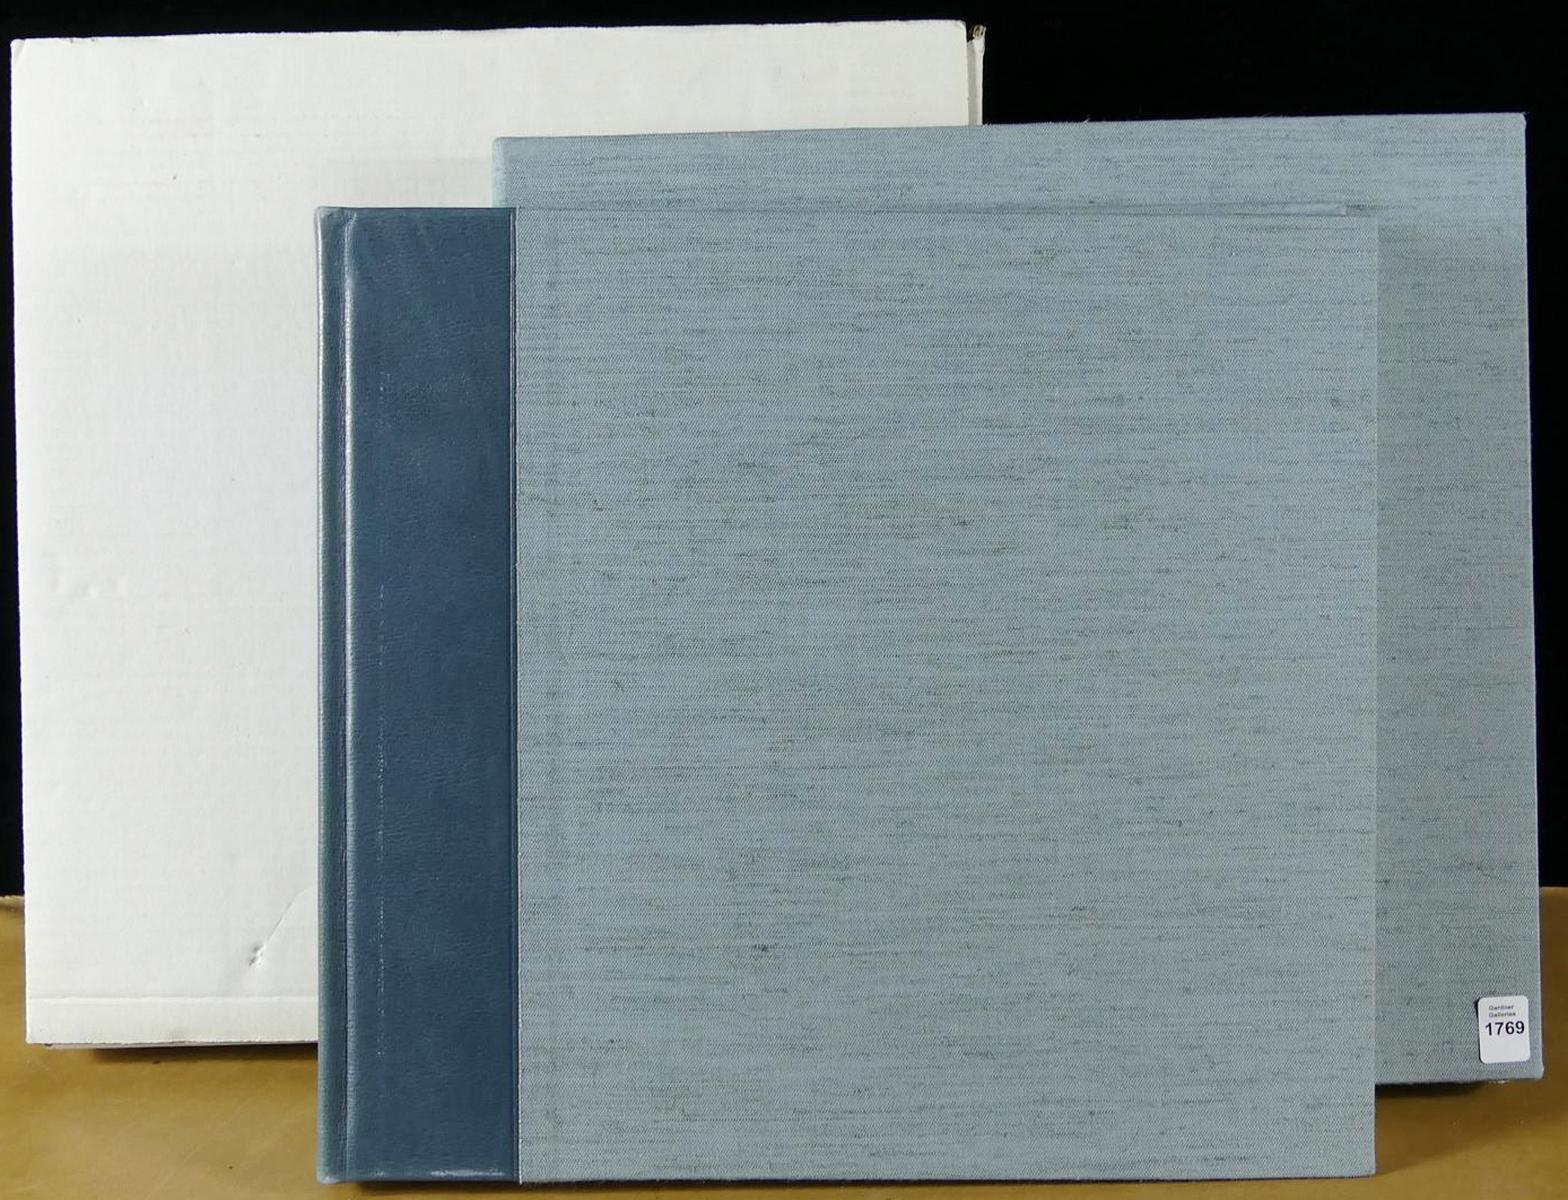 VALUABLE EMERALD RING